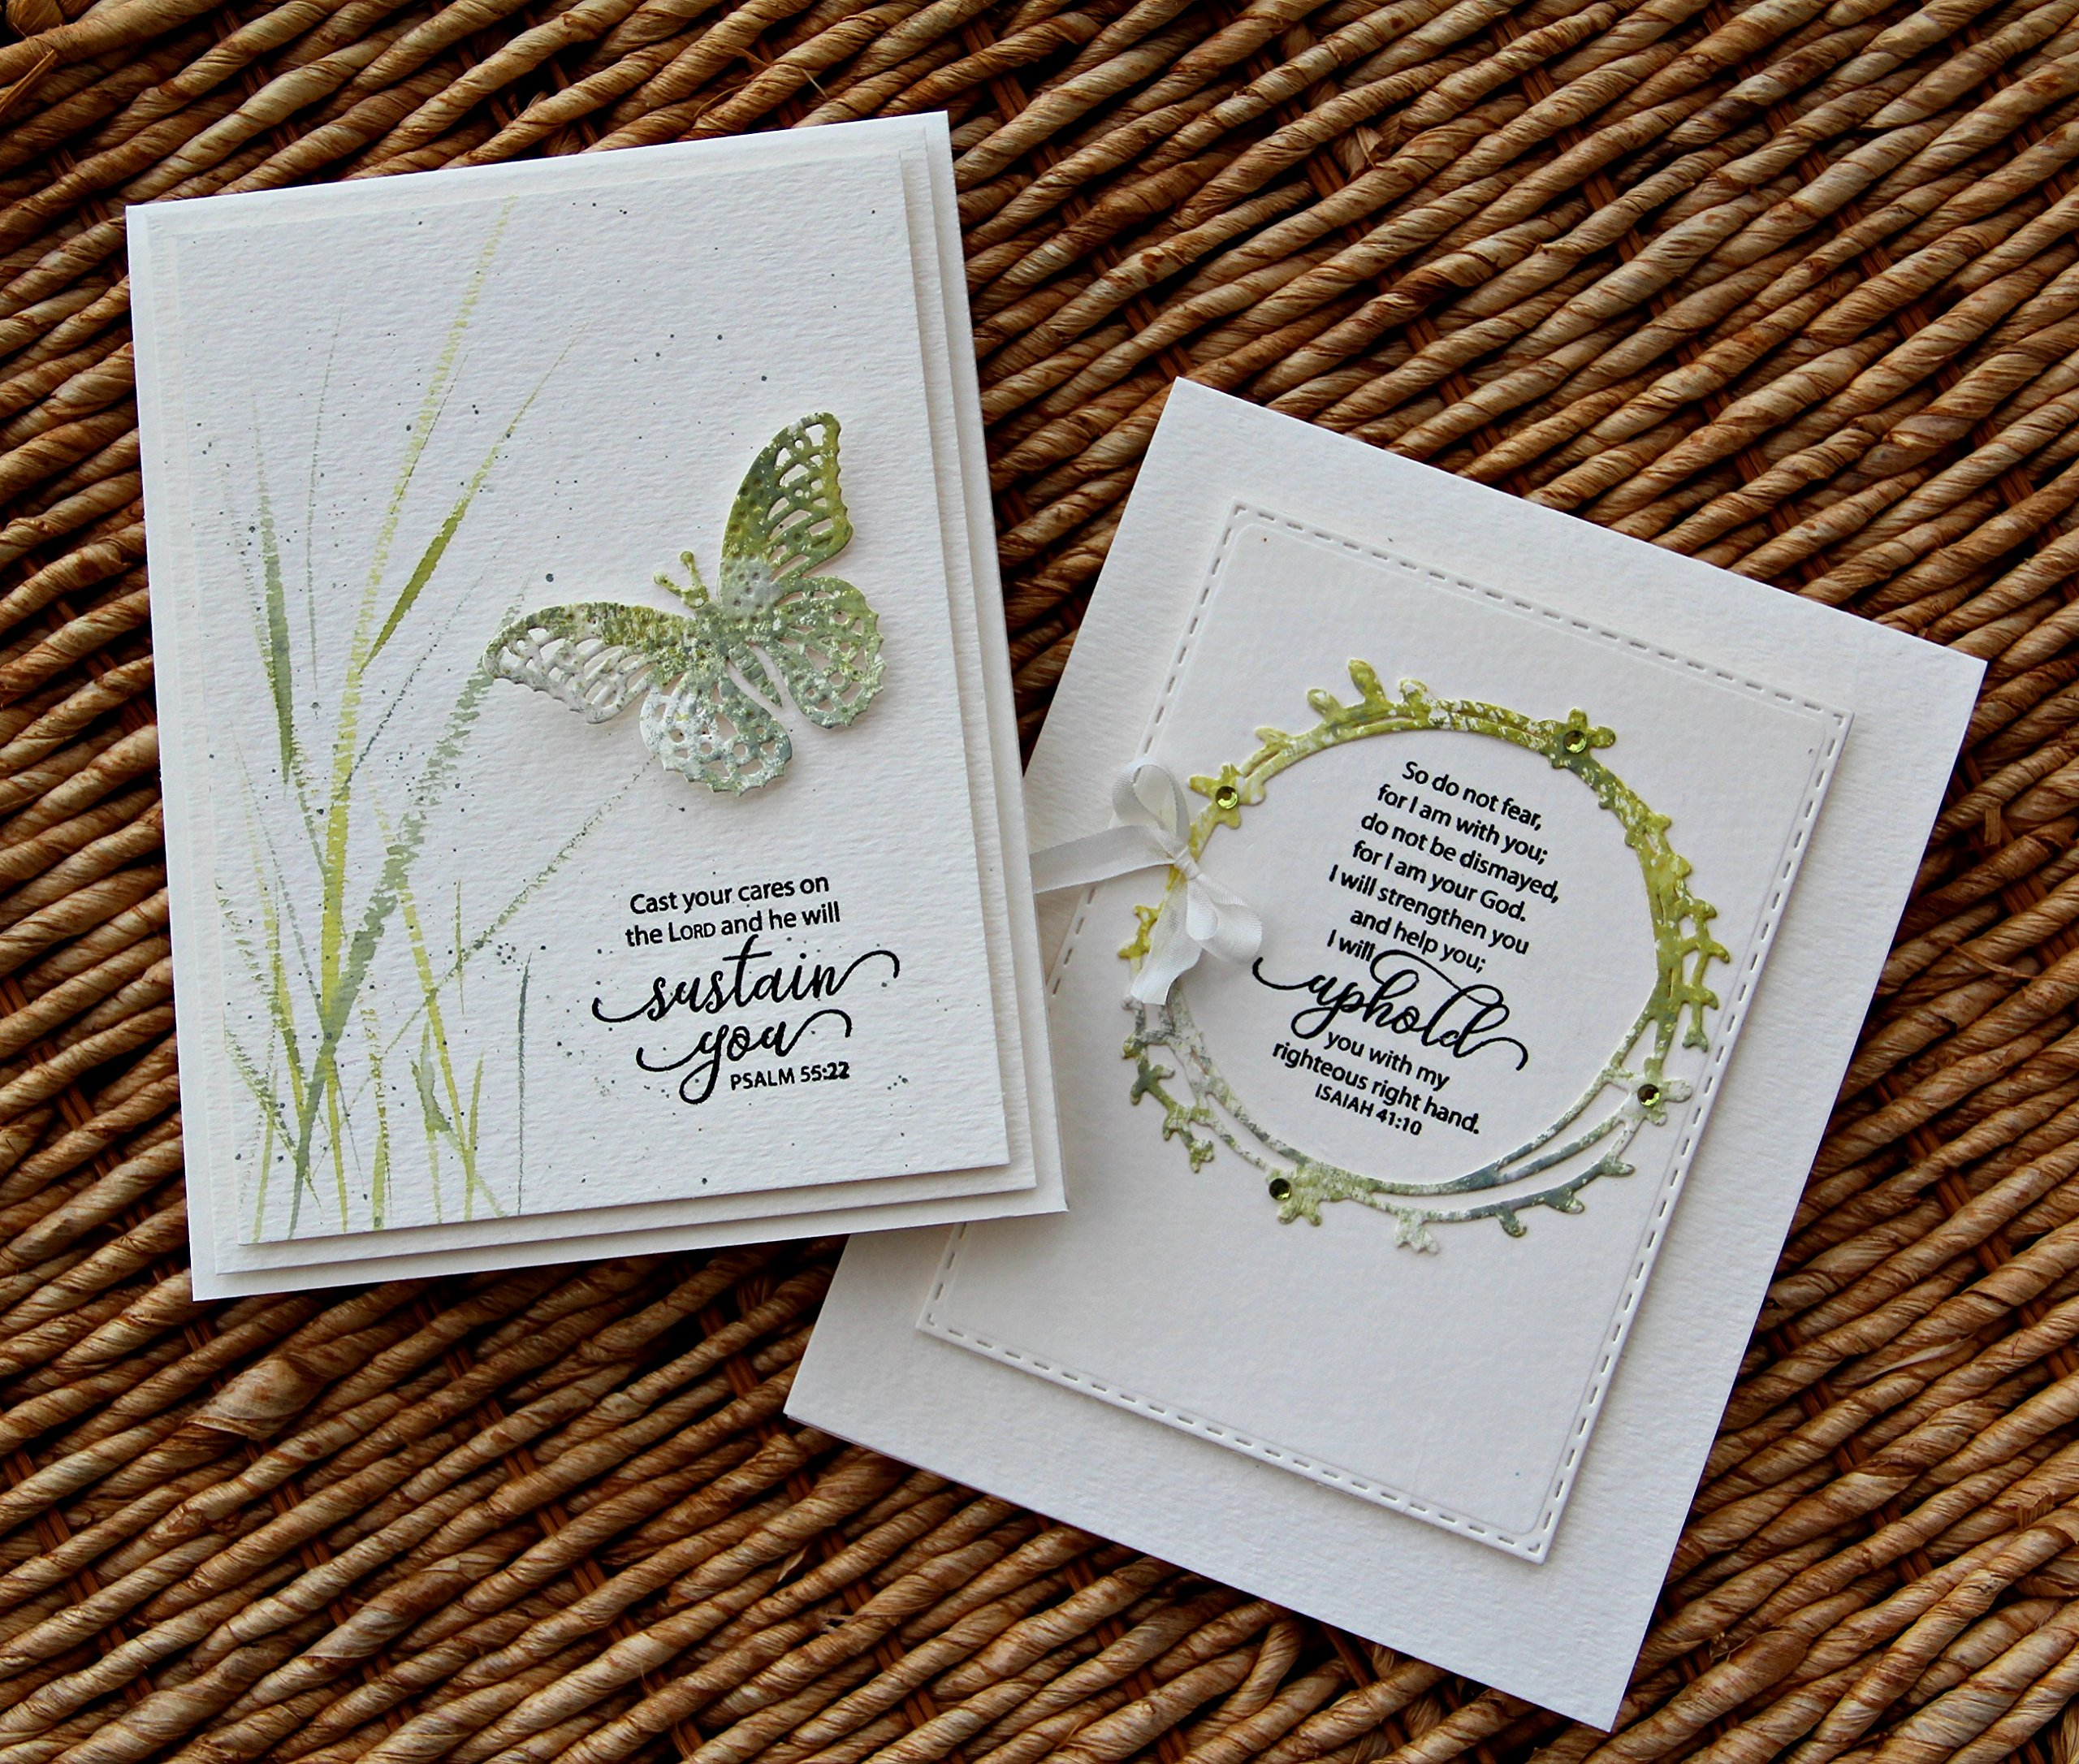 Stamp Simply Clear Stamps Fear Not and Words of Encouragement Christian Religious (2-Pack) 4x6 Inch Sheets - 17 Pieces by Stamp Simply (Image #4)